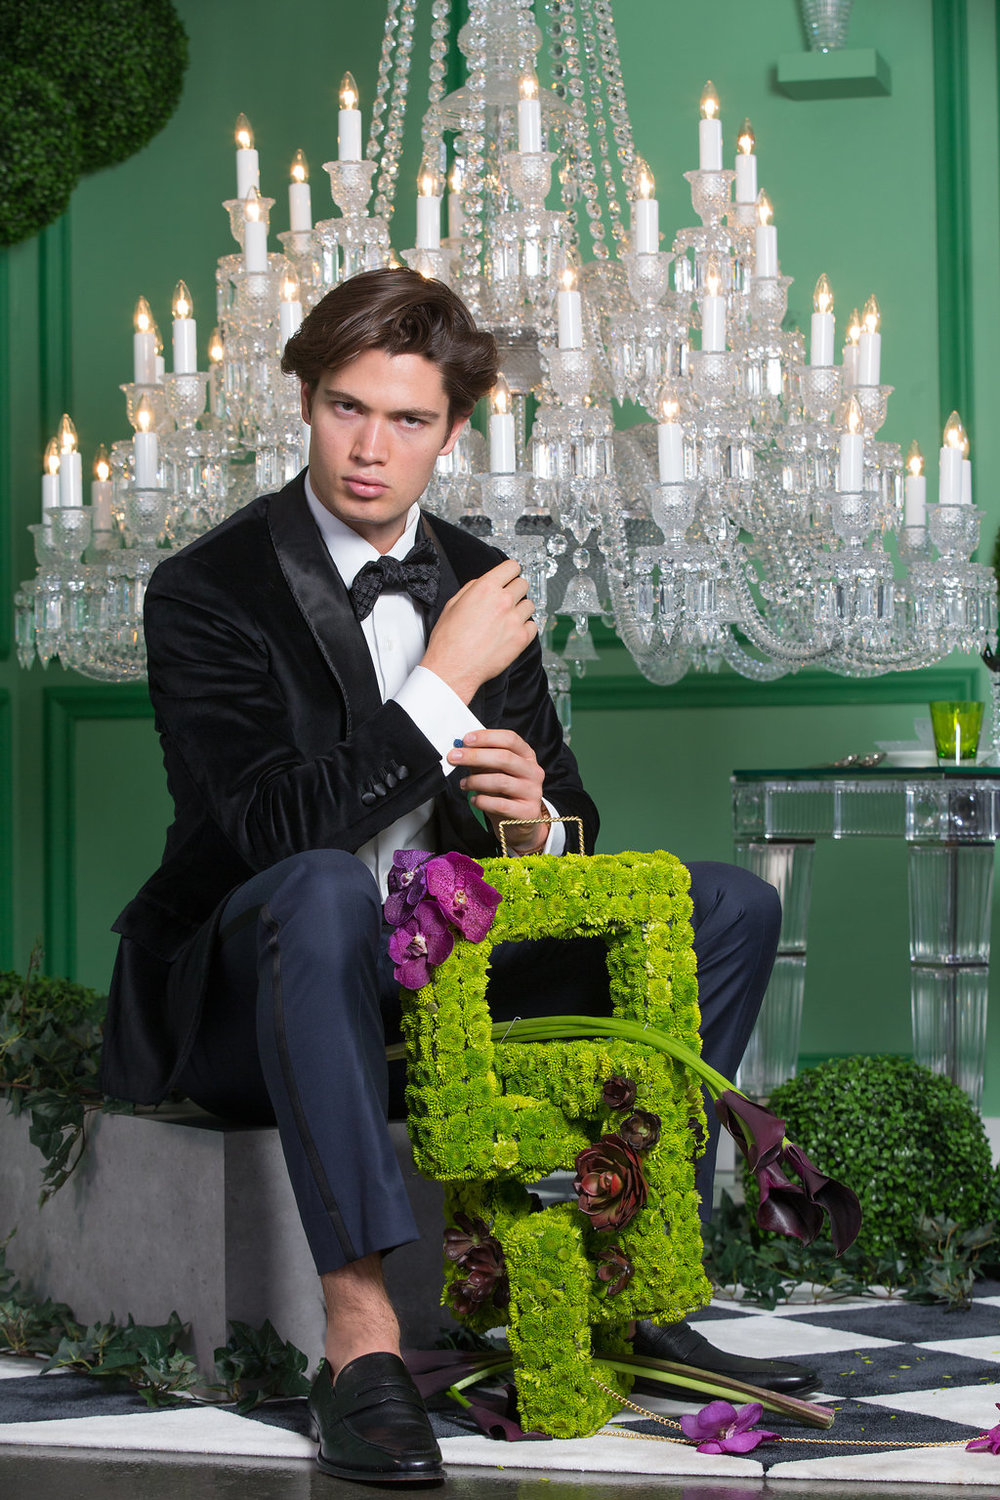 wedding-fashion-grace-ormonde-shoot_EYE1419.jpg